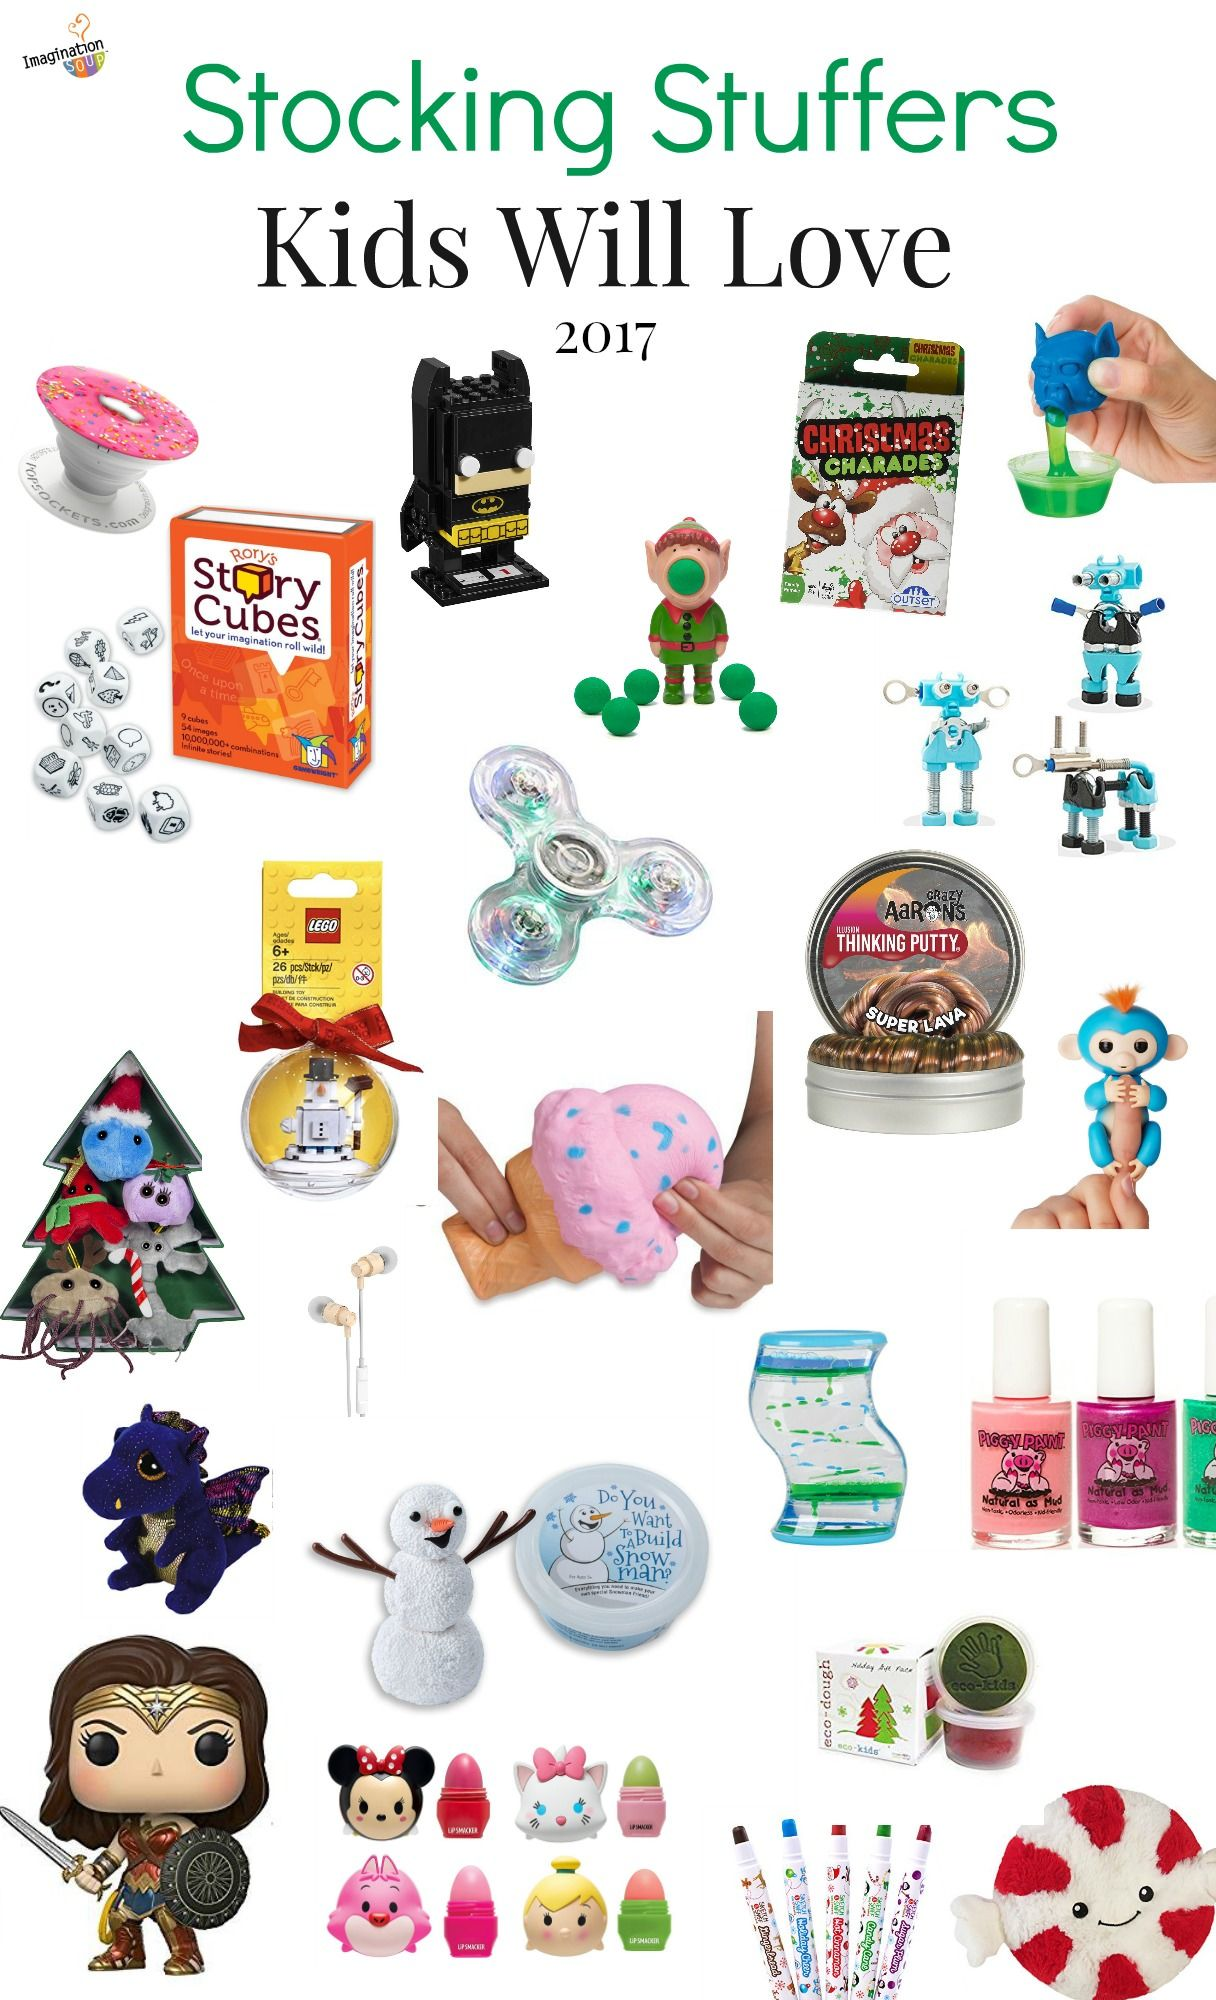 Stocking Stuffers For Kids And Teens Ages 3 18 Imagination Soup Stocking Stuffers For Kids Christmas Stocking Stuffers Stocking Stuffers